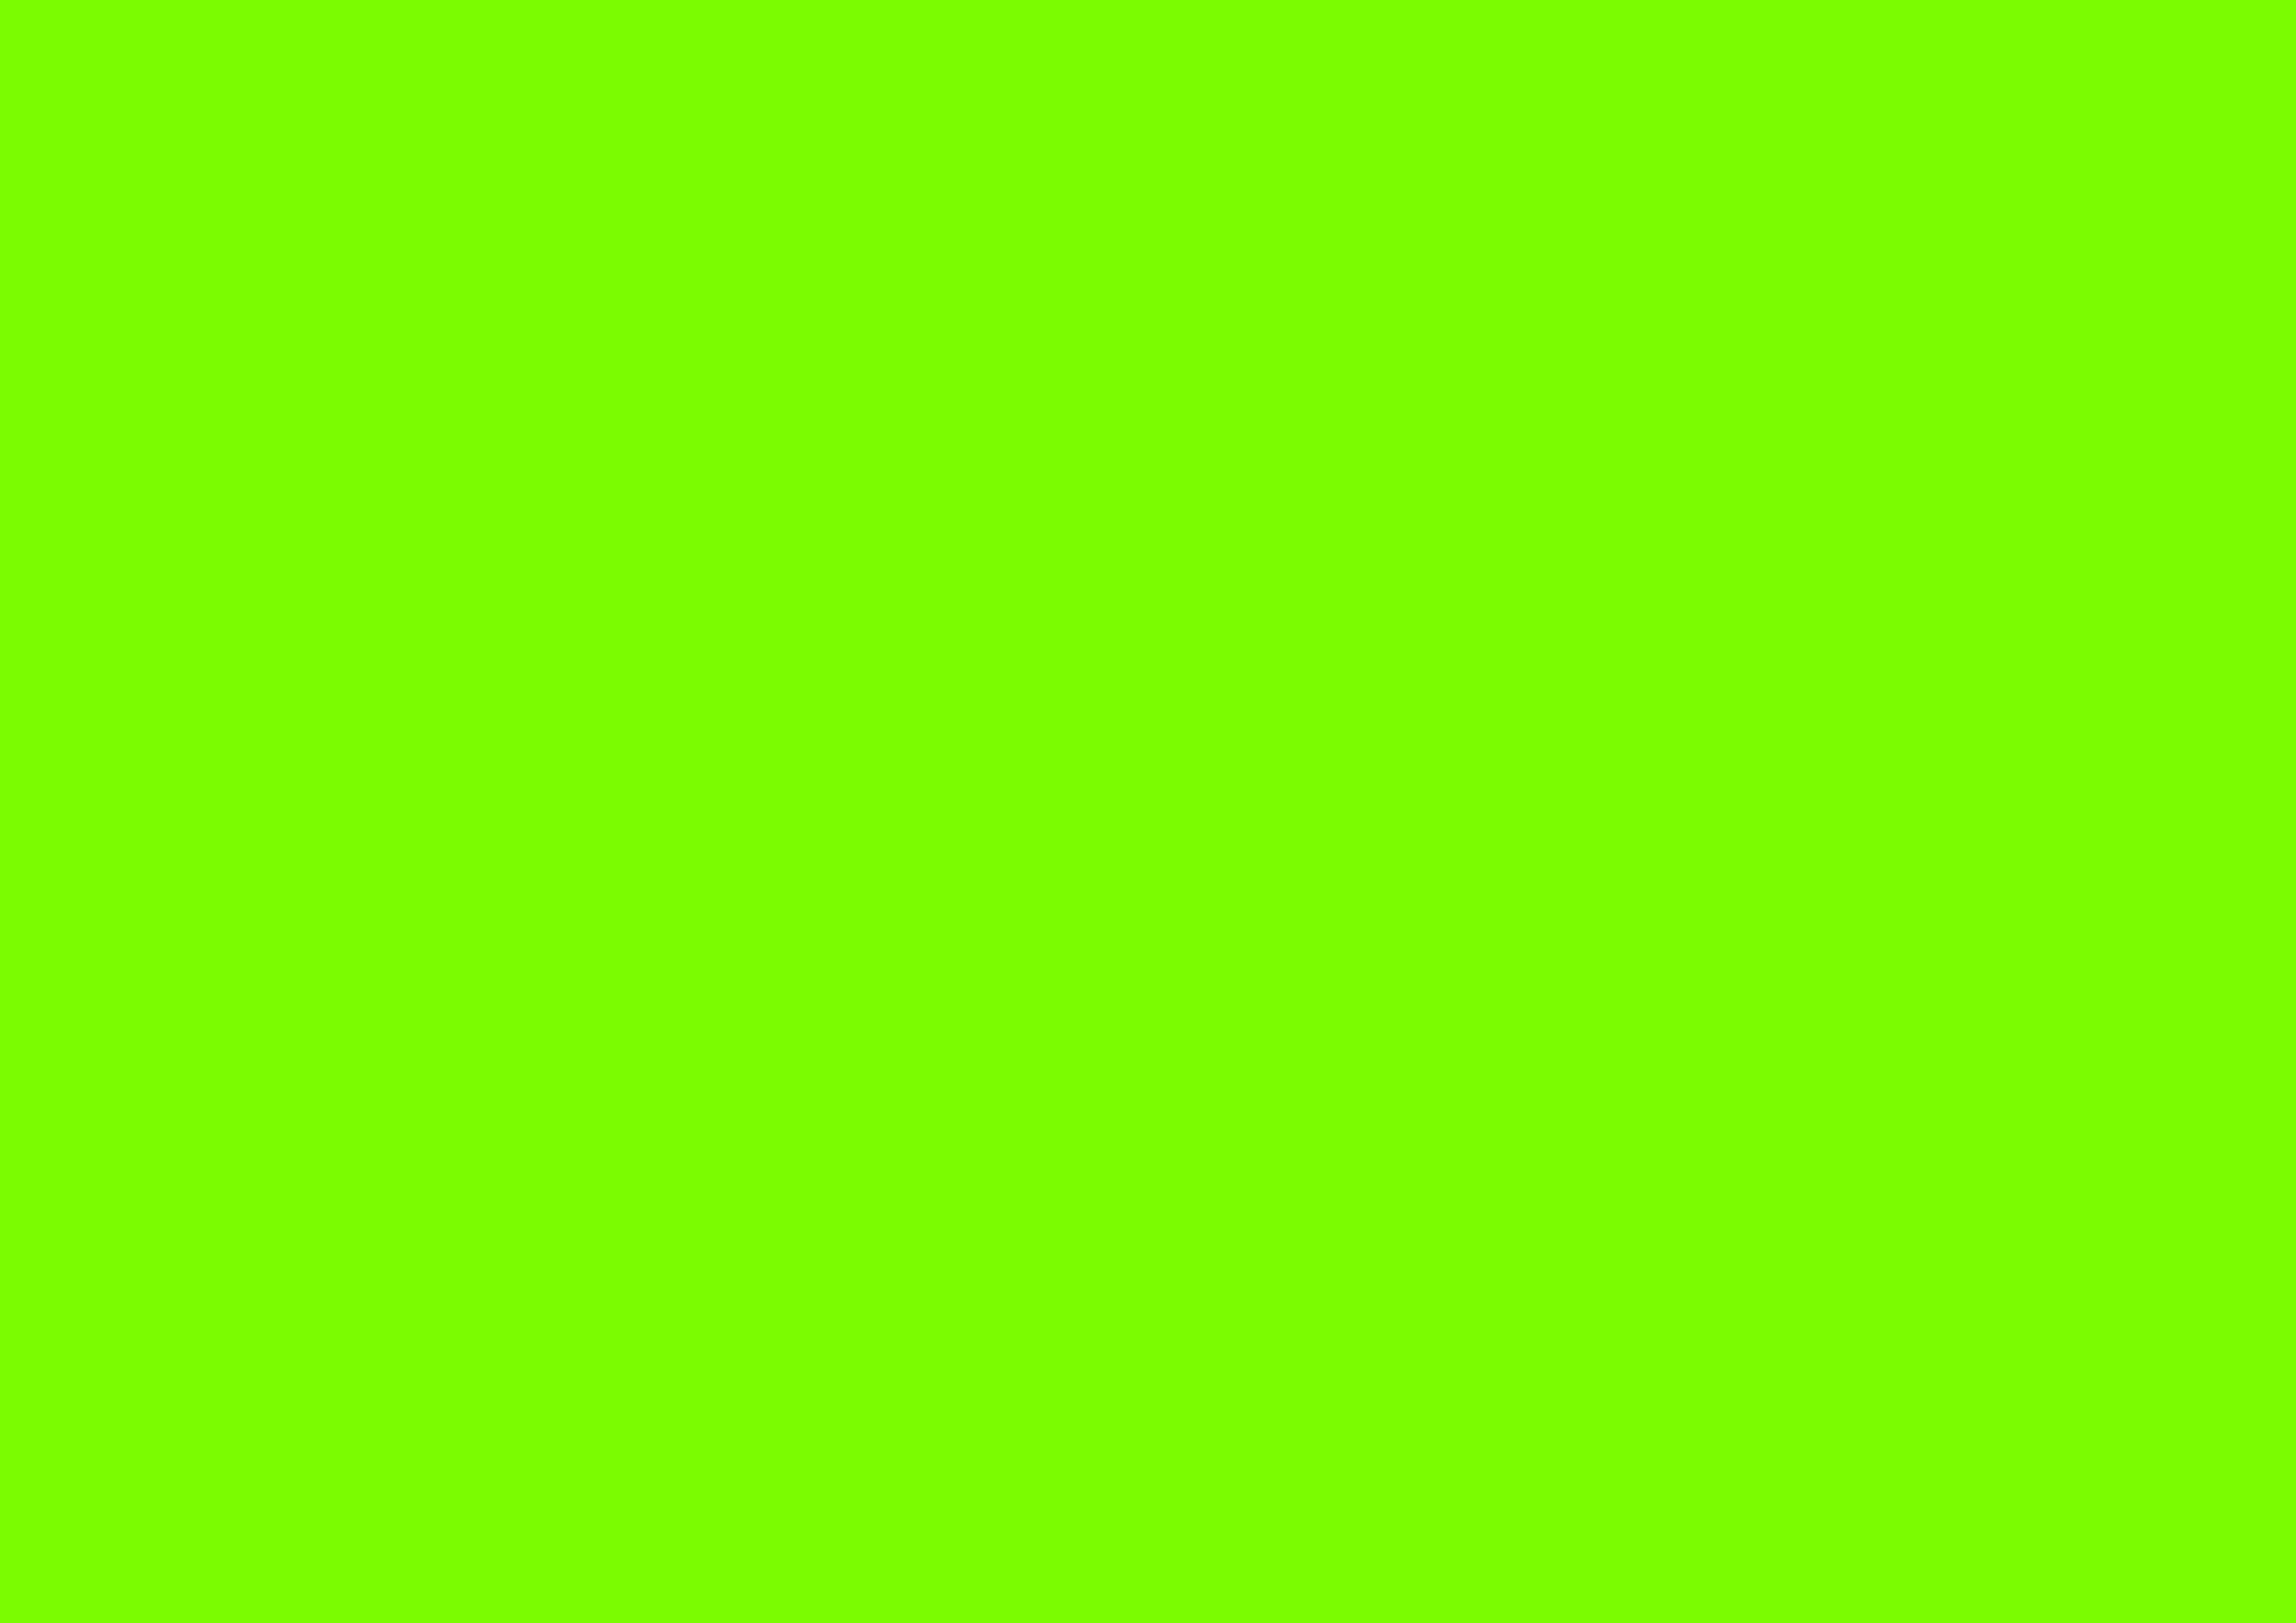 3508x2480 Lawn Green Solid Color Background